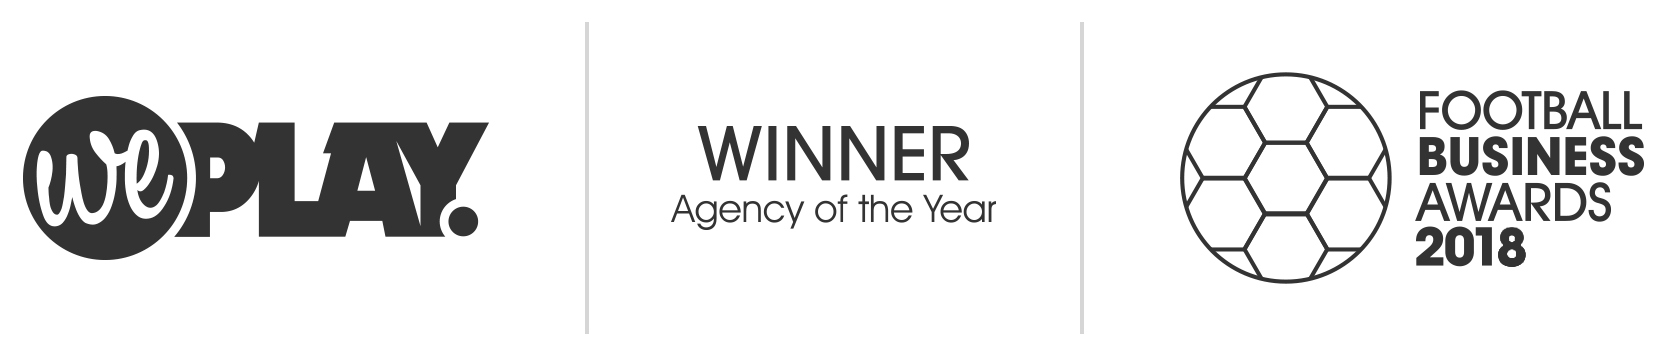 Football business Awards 2017 & 2018 Agency of the Year Winners